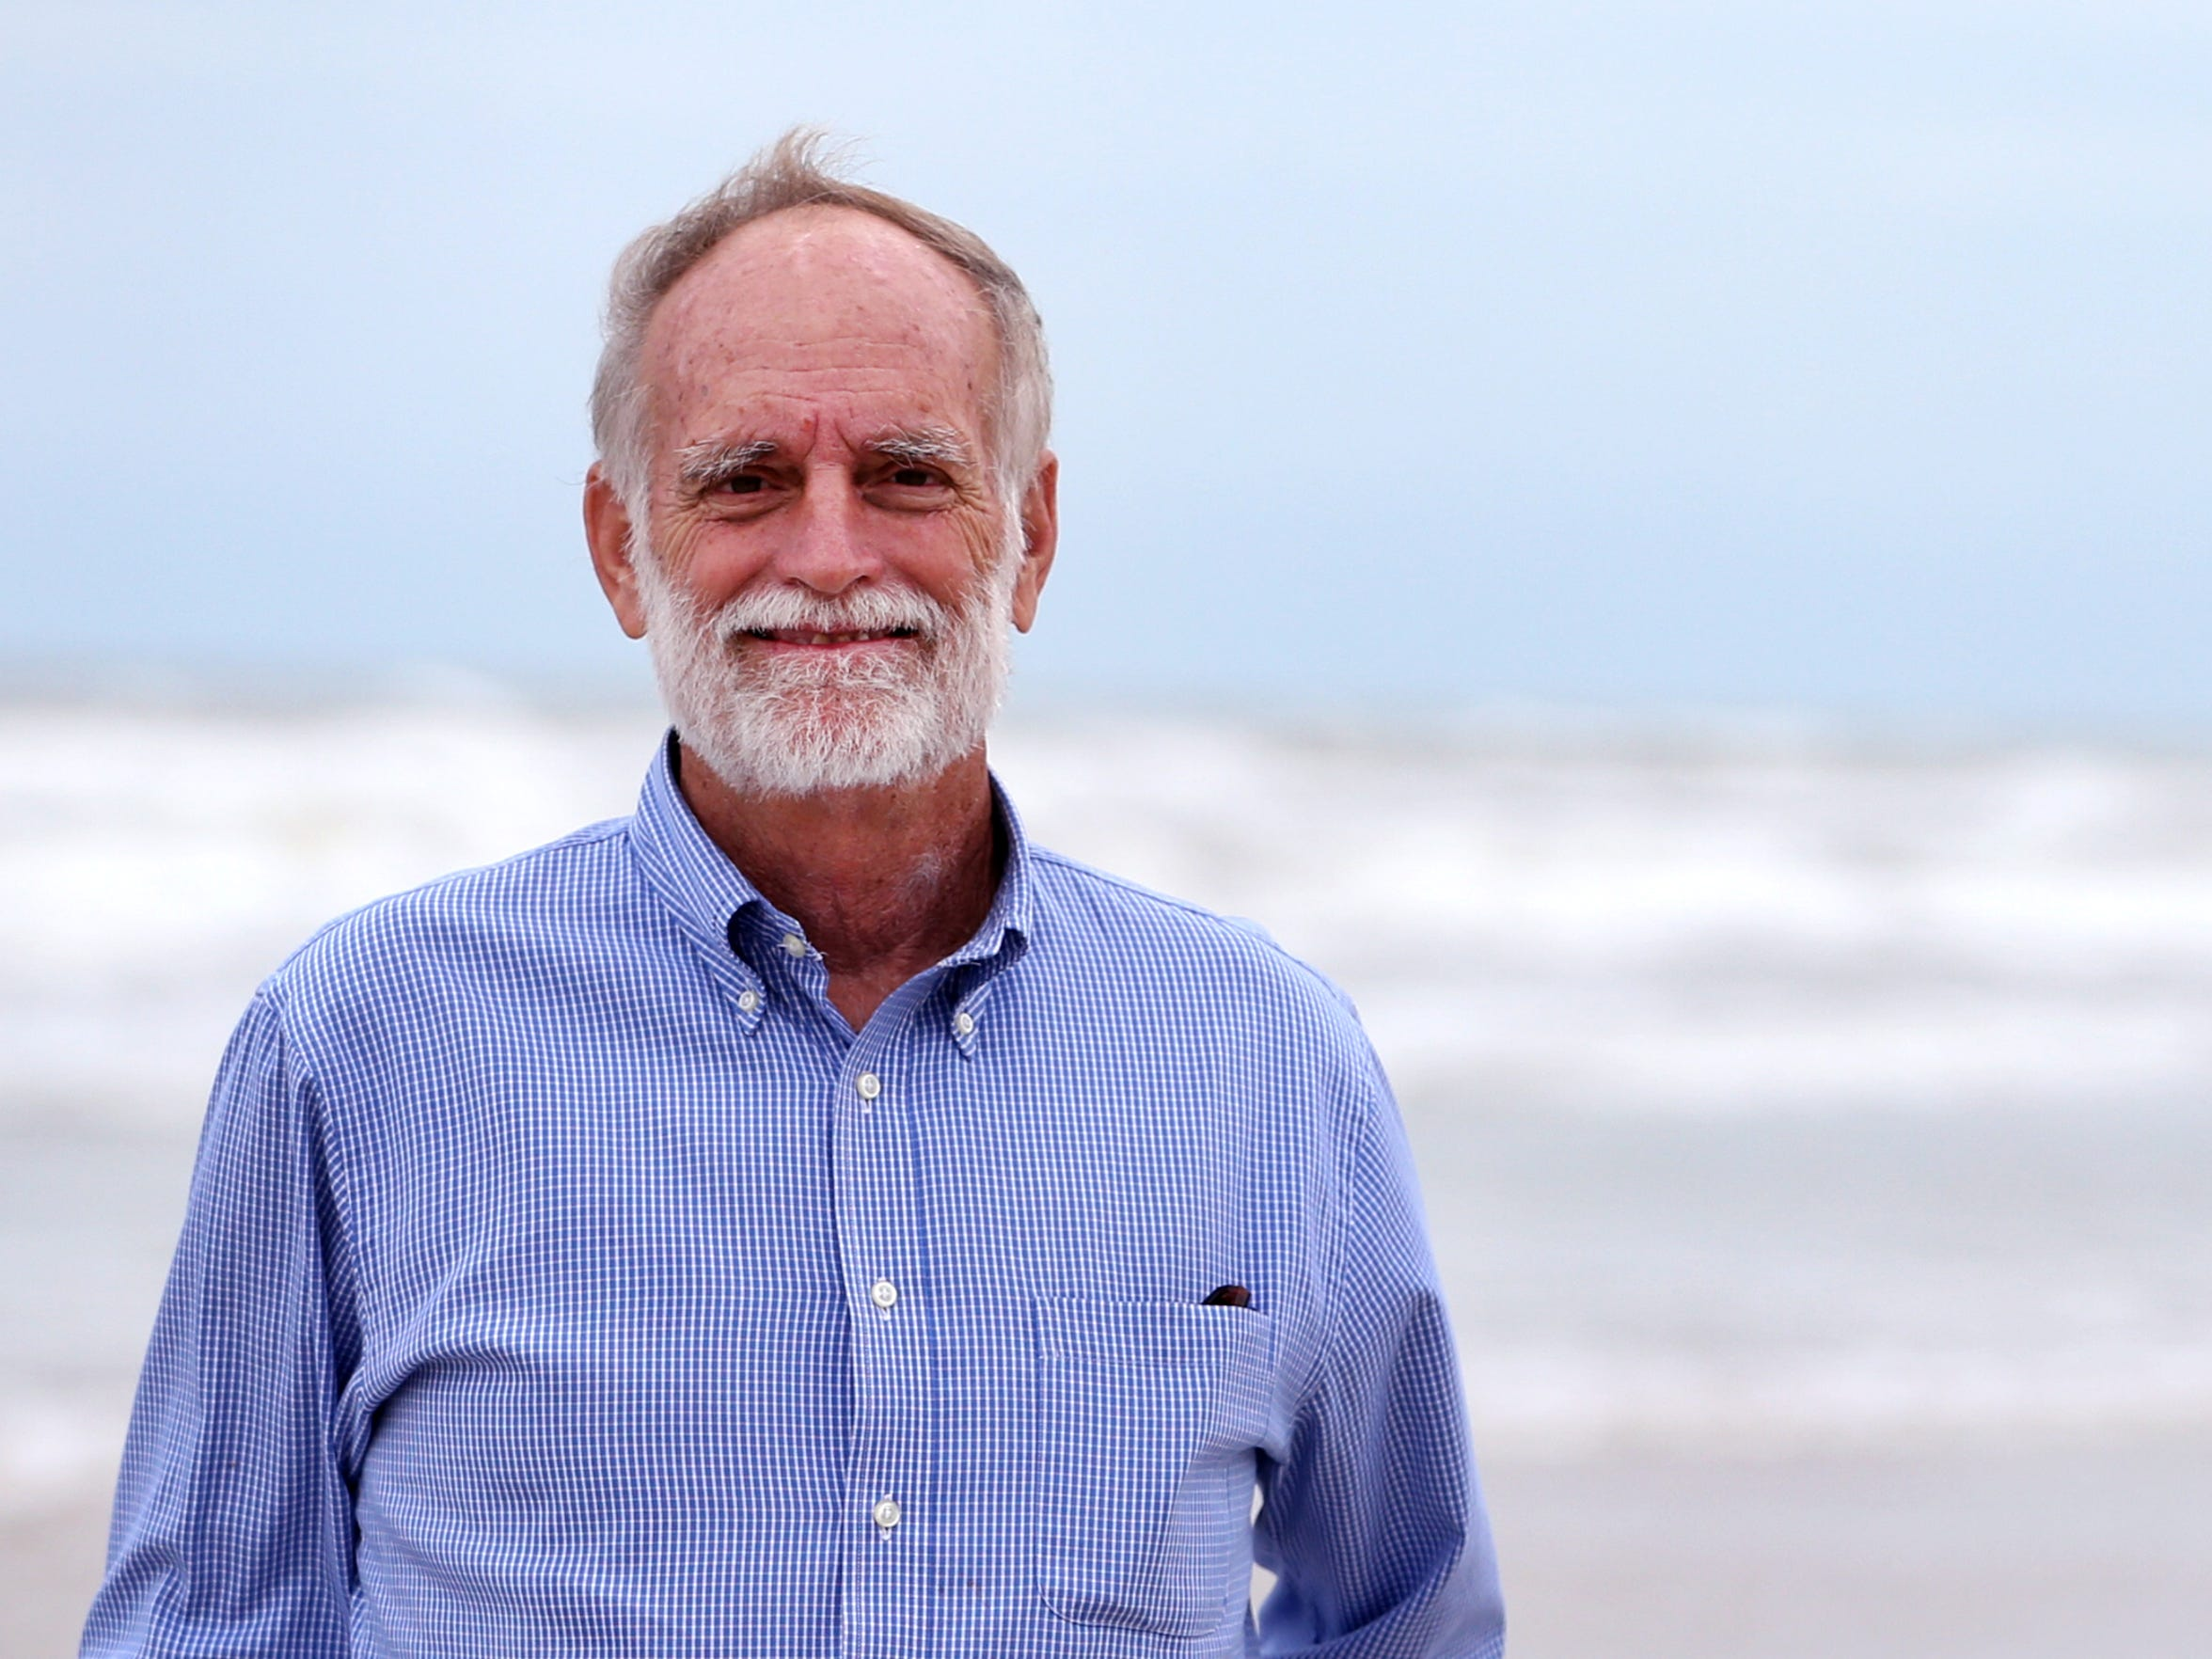 Greg Smith is the new council member who will be representing District 4. (Photographed at the beach near Whitecap 12/1/16.)